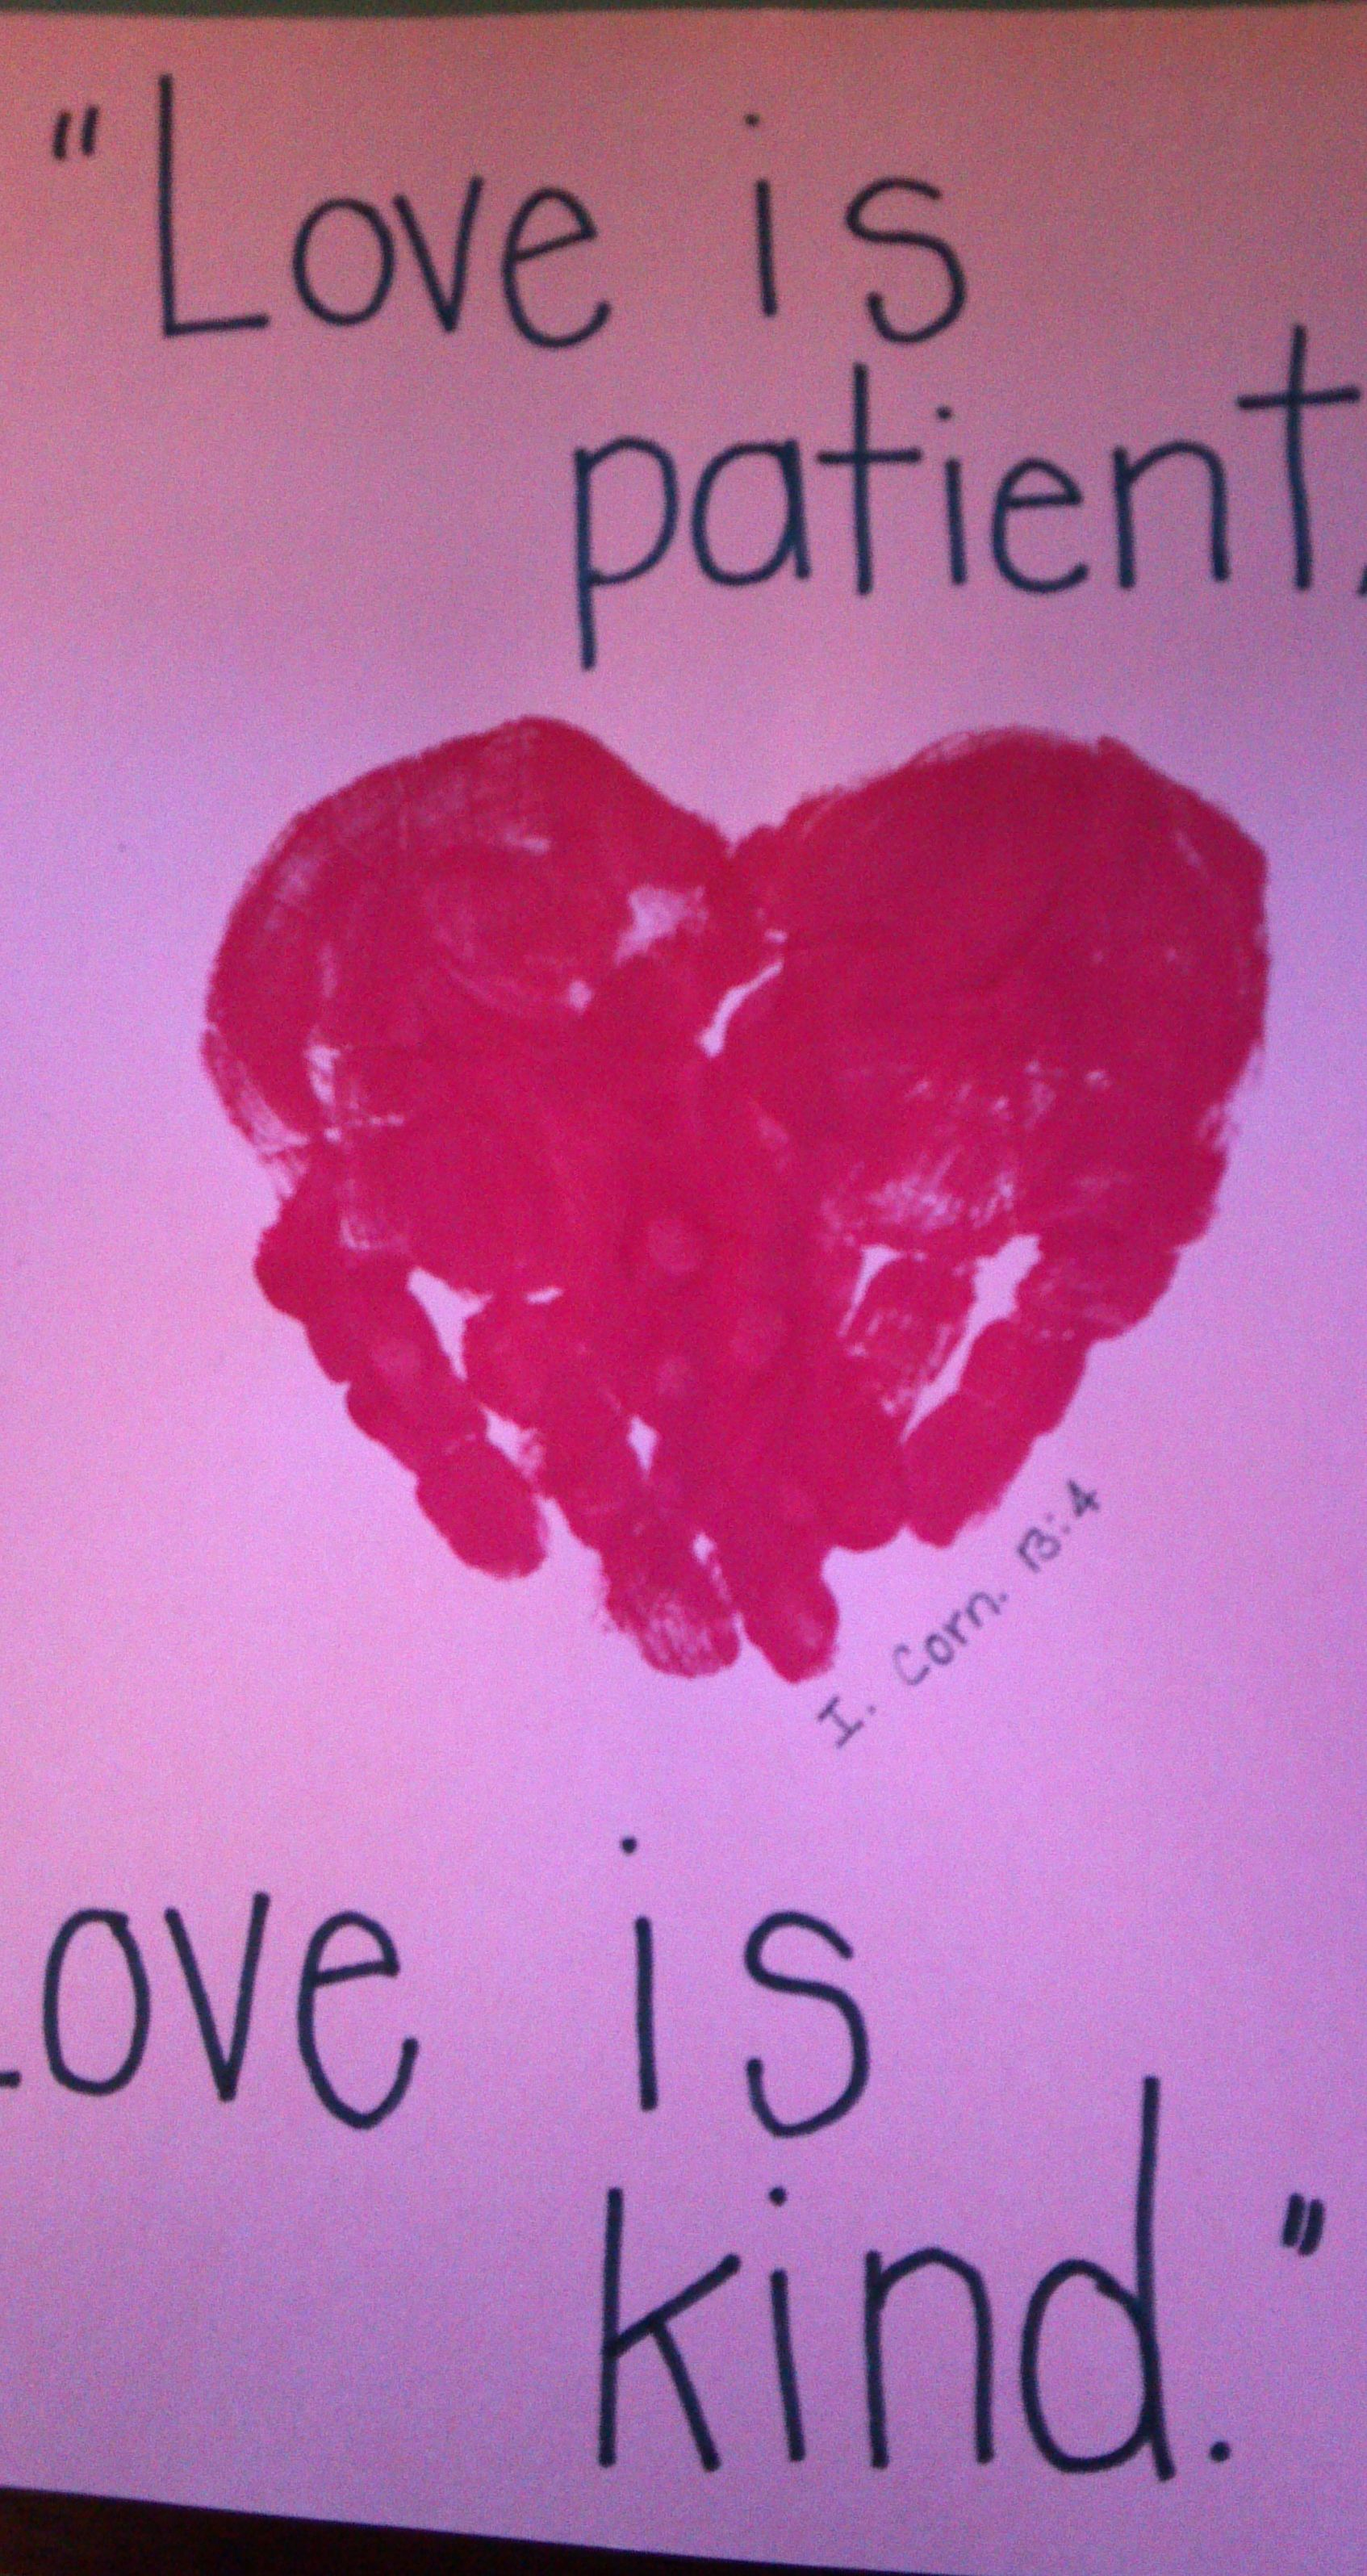 Handprint Craft For Our Bible Verse This Month I Corn 13 4